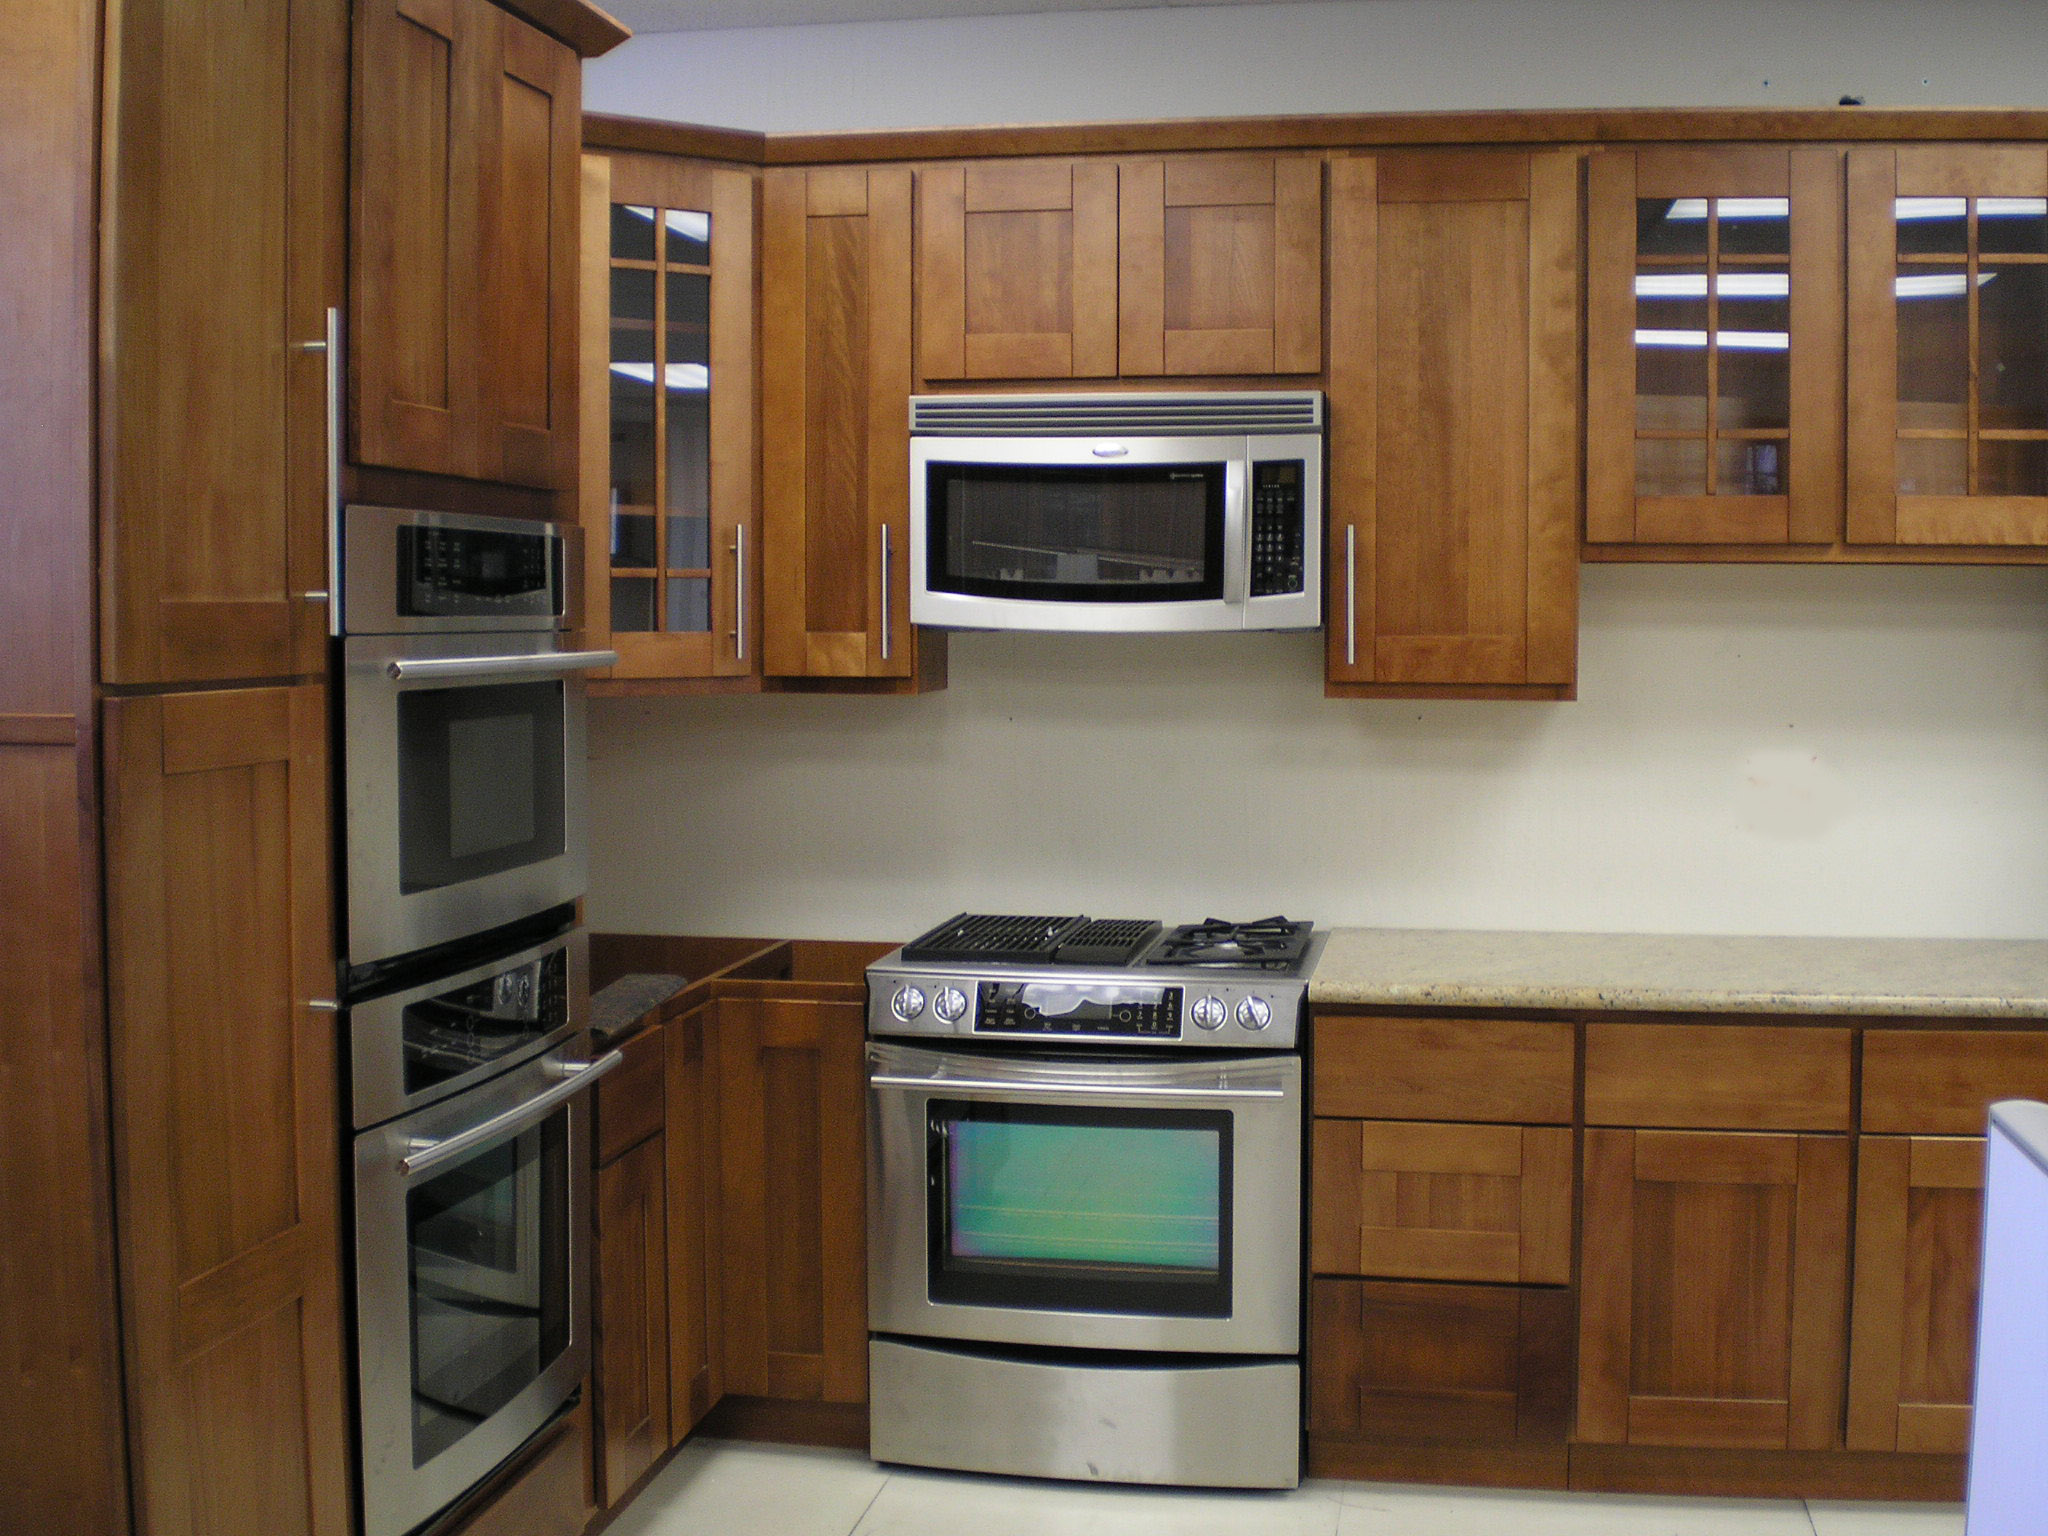 shaker kitchen cabinets kitchen cabinets cheap Discount All Wood Cherry Kitchen Cabinets